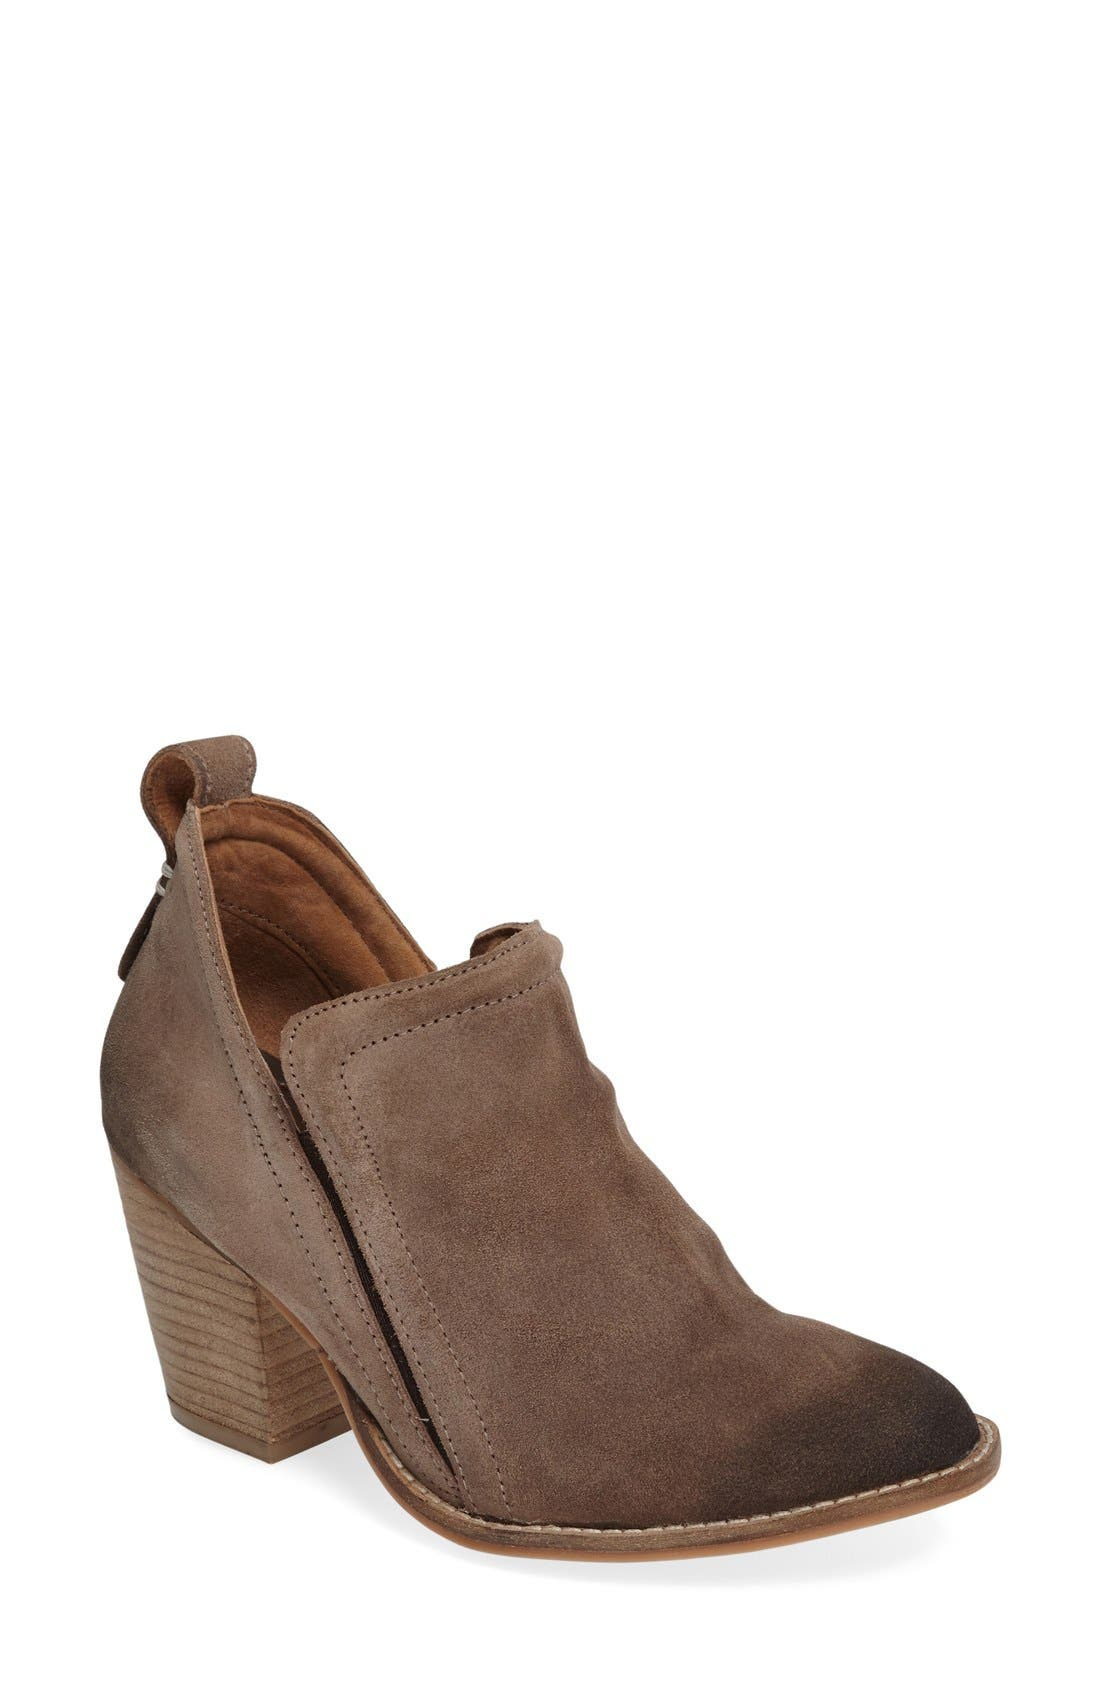 Alternate Image 1 Selected - Jeffrey Campbell Burman Split Shaft Bootie (Women)